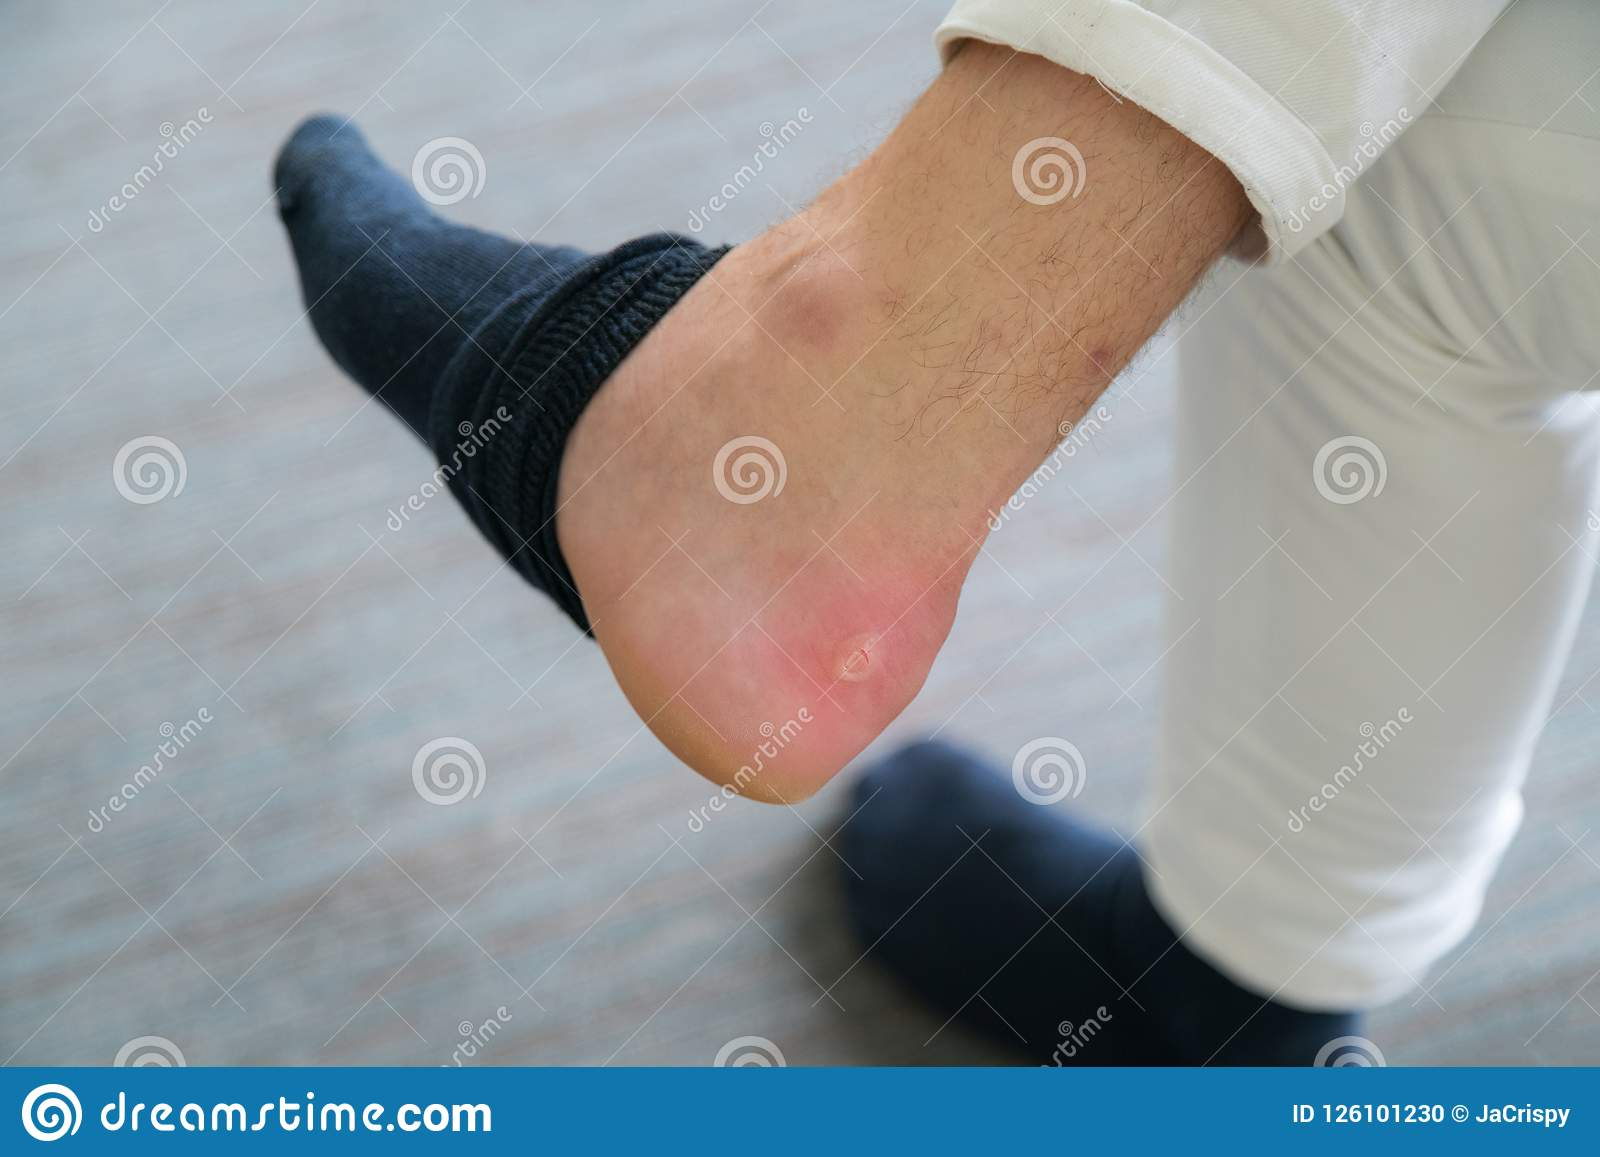 Painful Heel wound on mans feet caused by new shoes. Cracked terrible blister on human heel with new brown fashion shoes laying